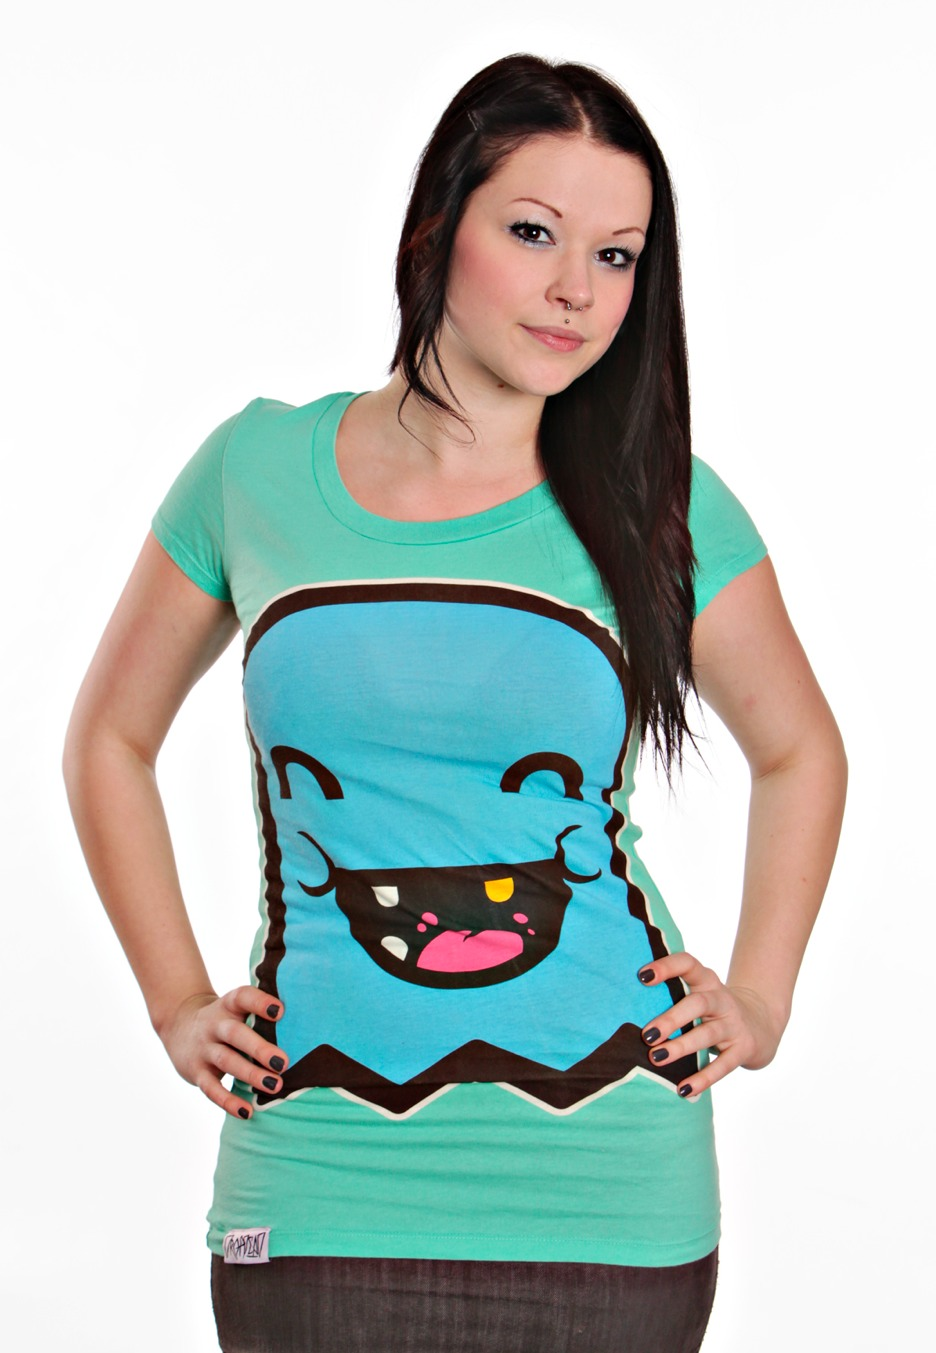 Drop Dead - Ghost Green - Girly - Impericon.com WorldwideDrop Dead Clothing Ghost